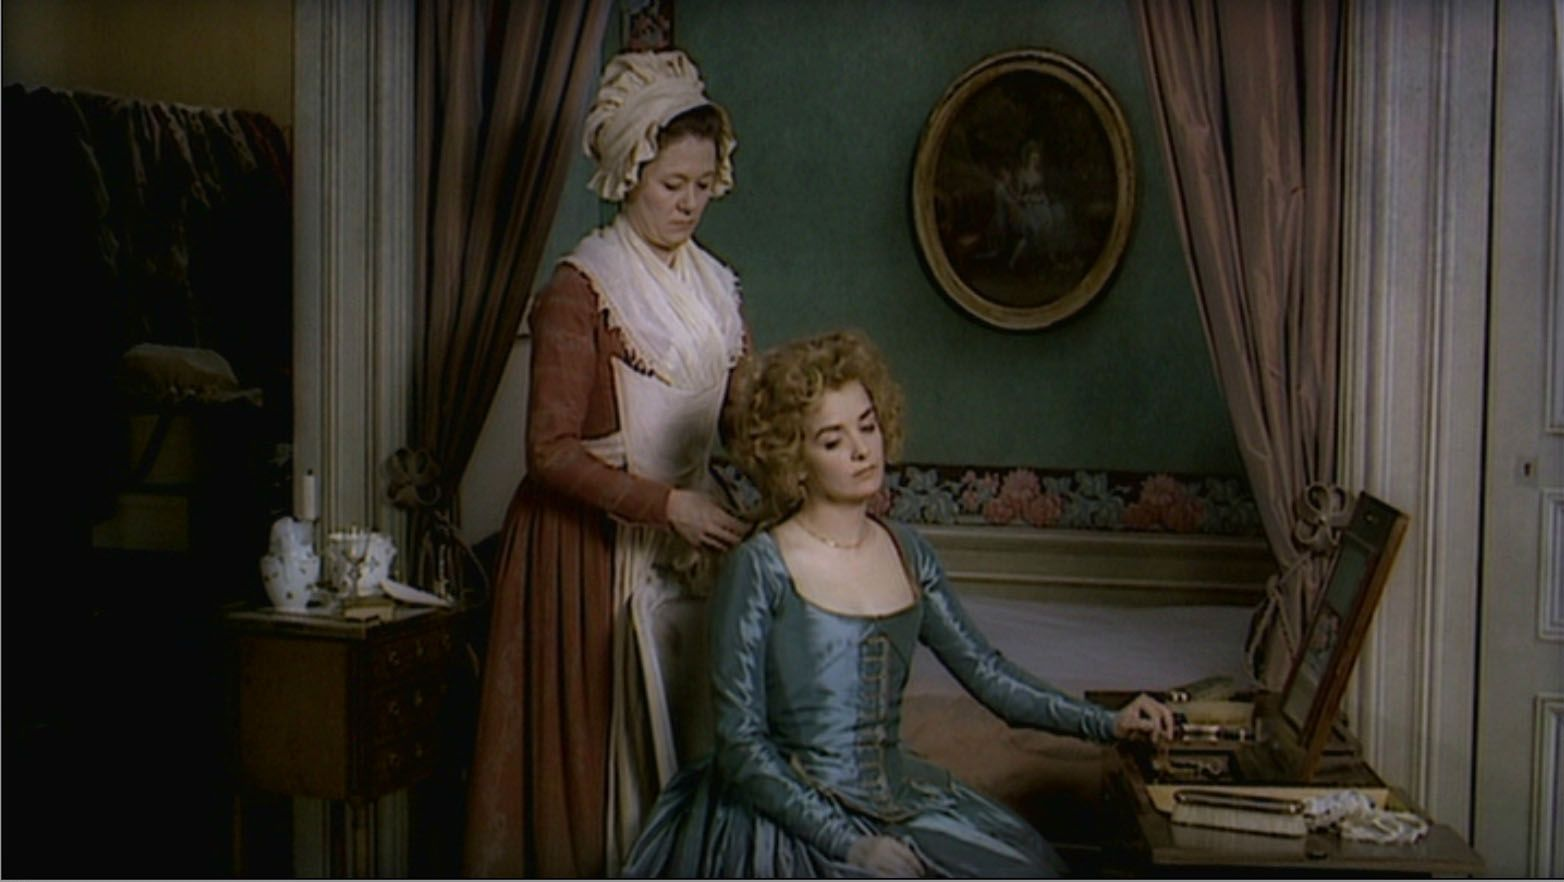 """The Lady and the Duke - film by Eric Rohmer 2001 """"L'Anglaise et le Duc""""    Cinéma, Duchesse, Costume"""